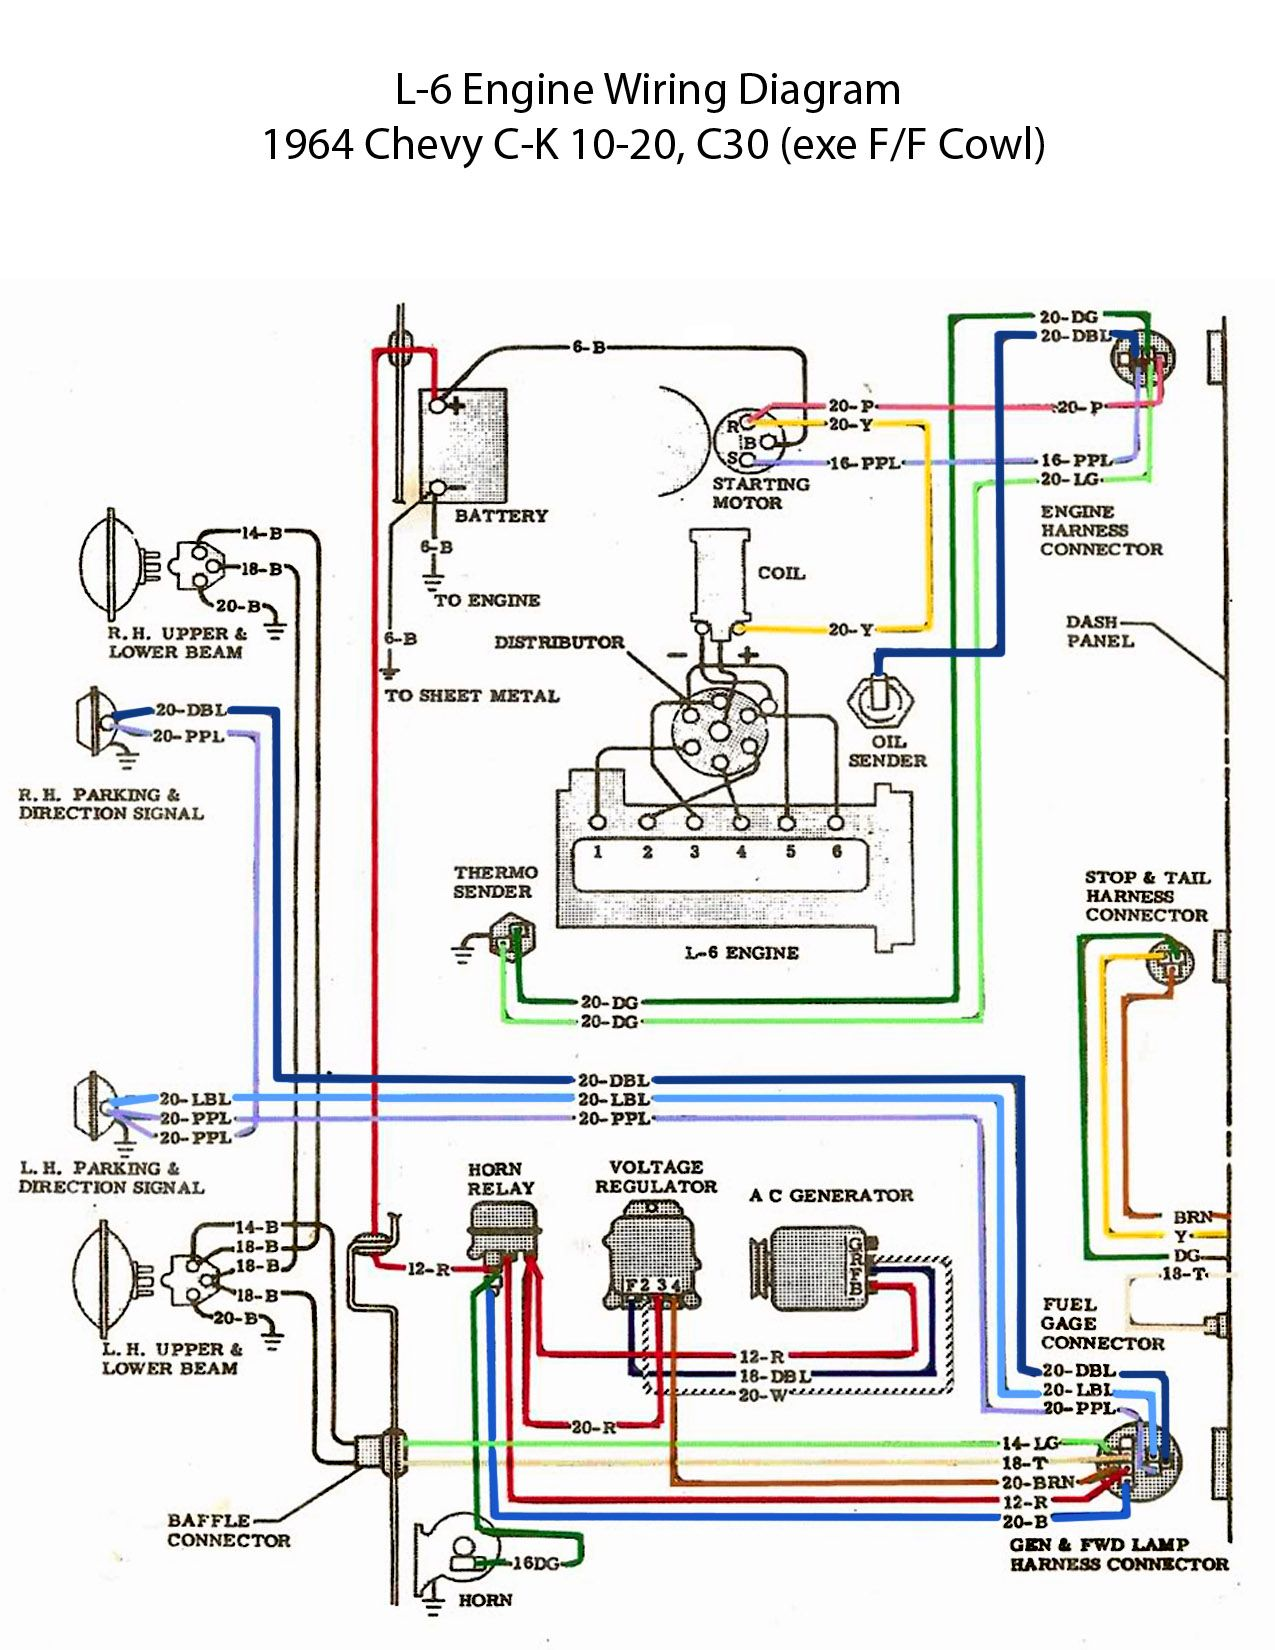 electric l 6 engine wiring diagram 60s chevy c10 wiring rh pinterest com 1970 chevy c10 wiring diagram 1970 chevy c10 wiring diagram